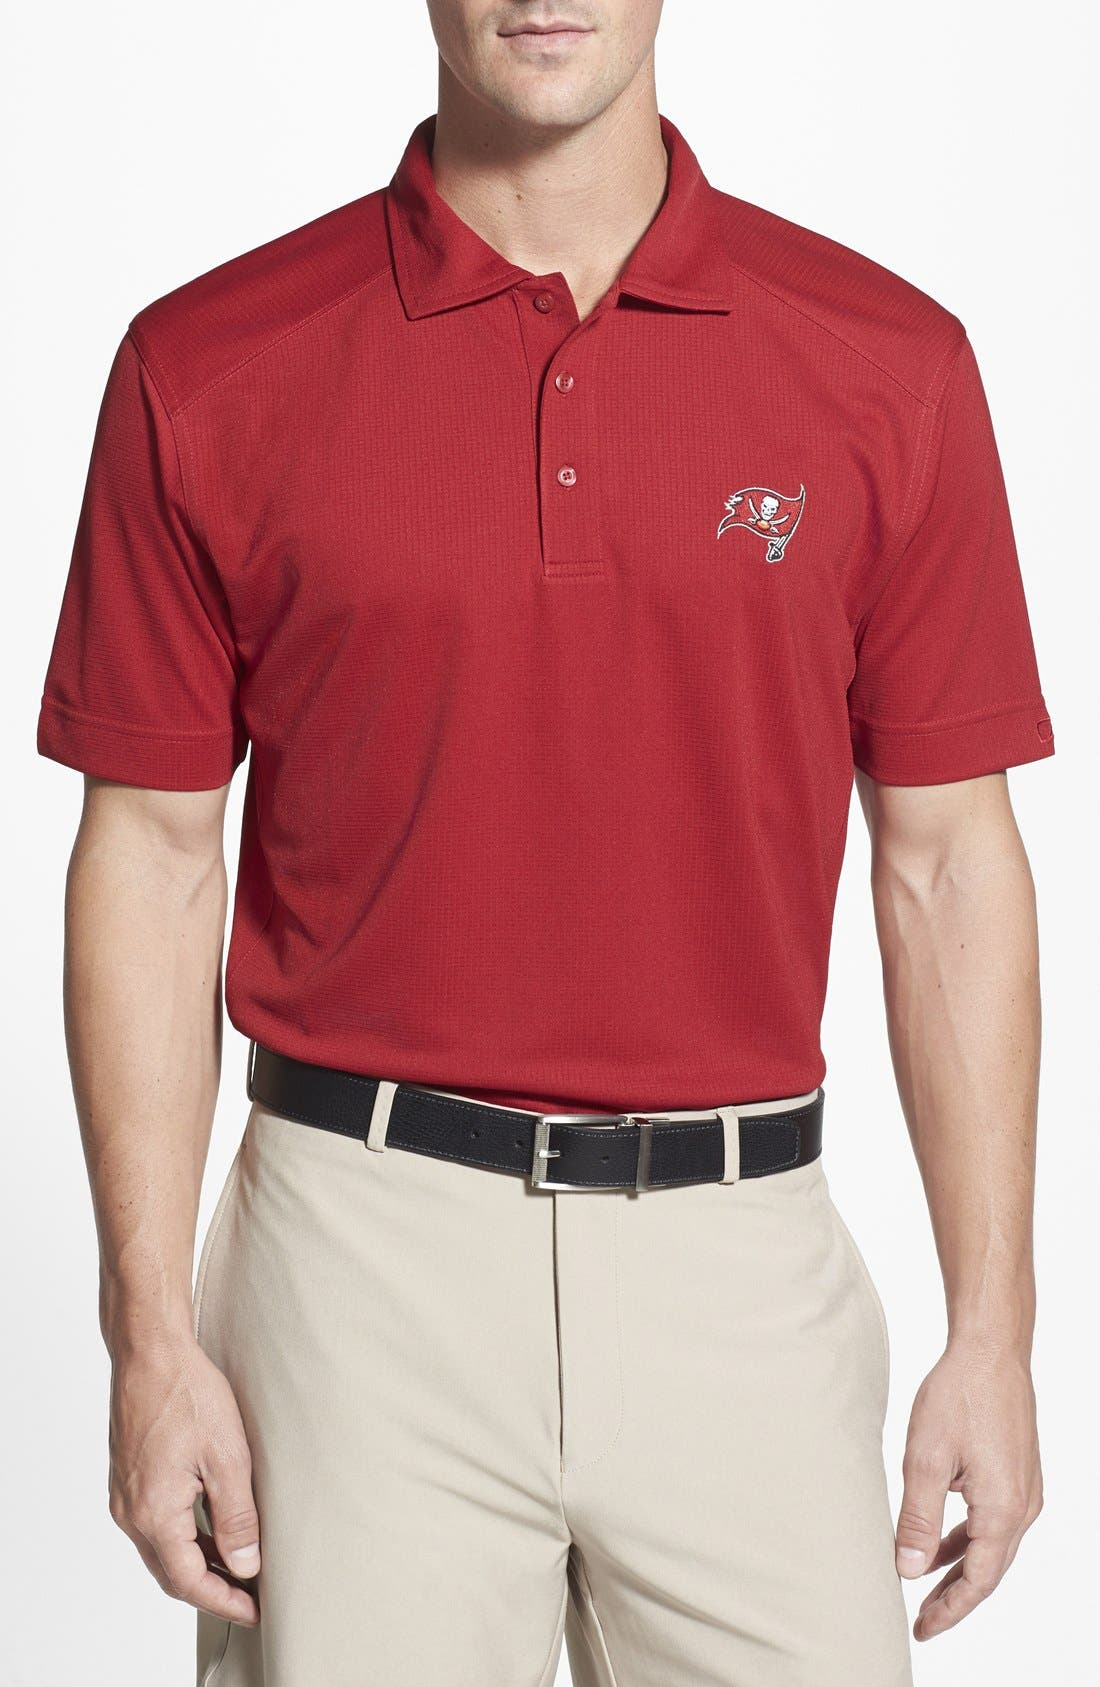 Alternate Image 1 Selected - Cutter & Buck Tampa Bay Buccaneers - Genre DryTec Moisture Wicking Polo